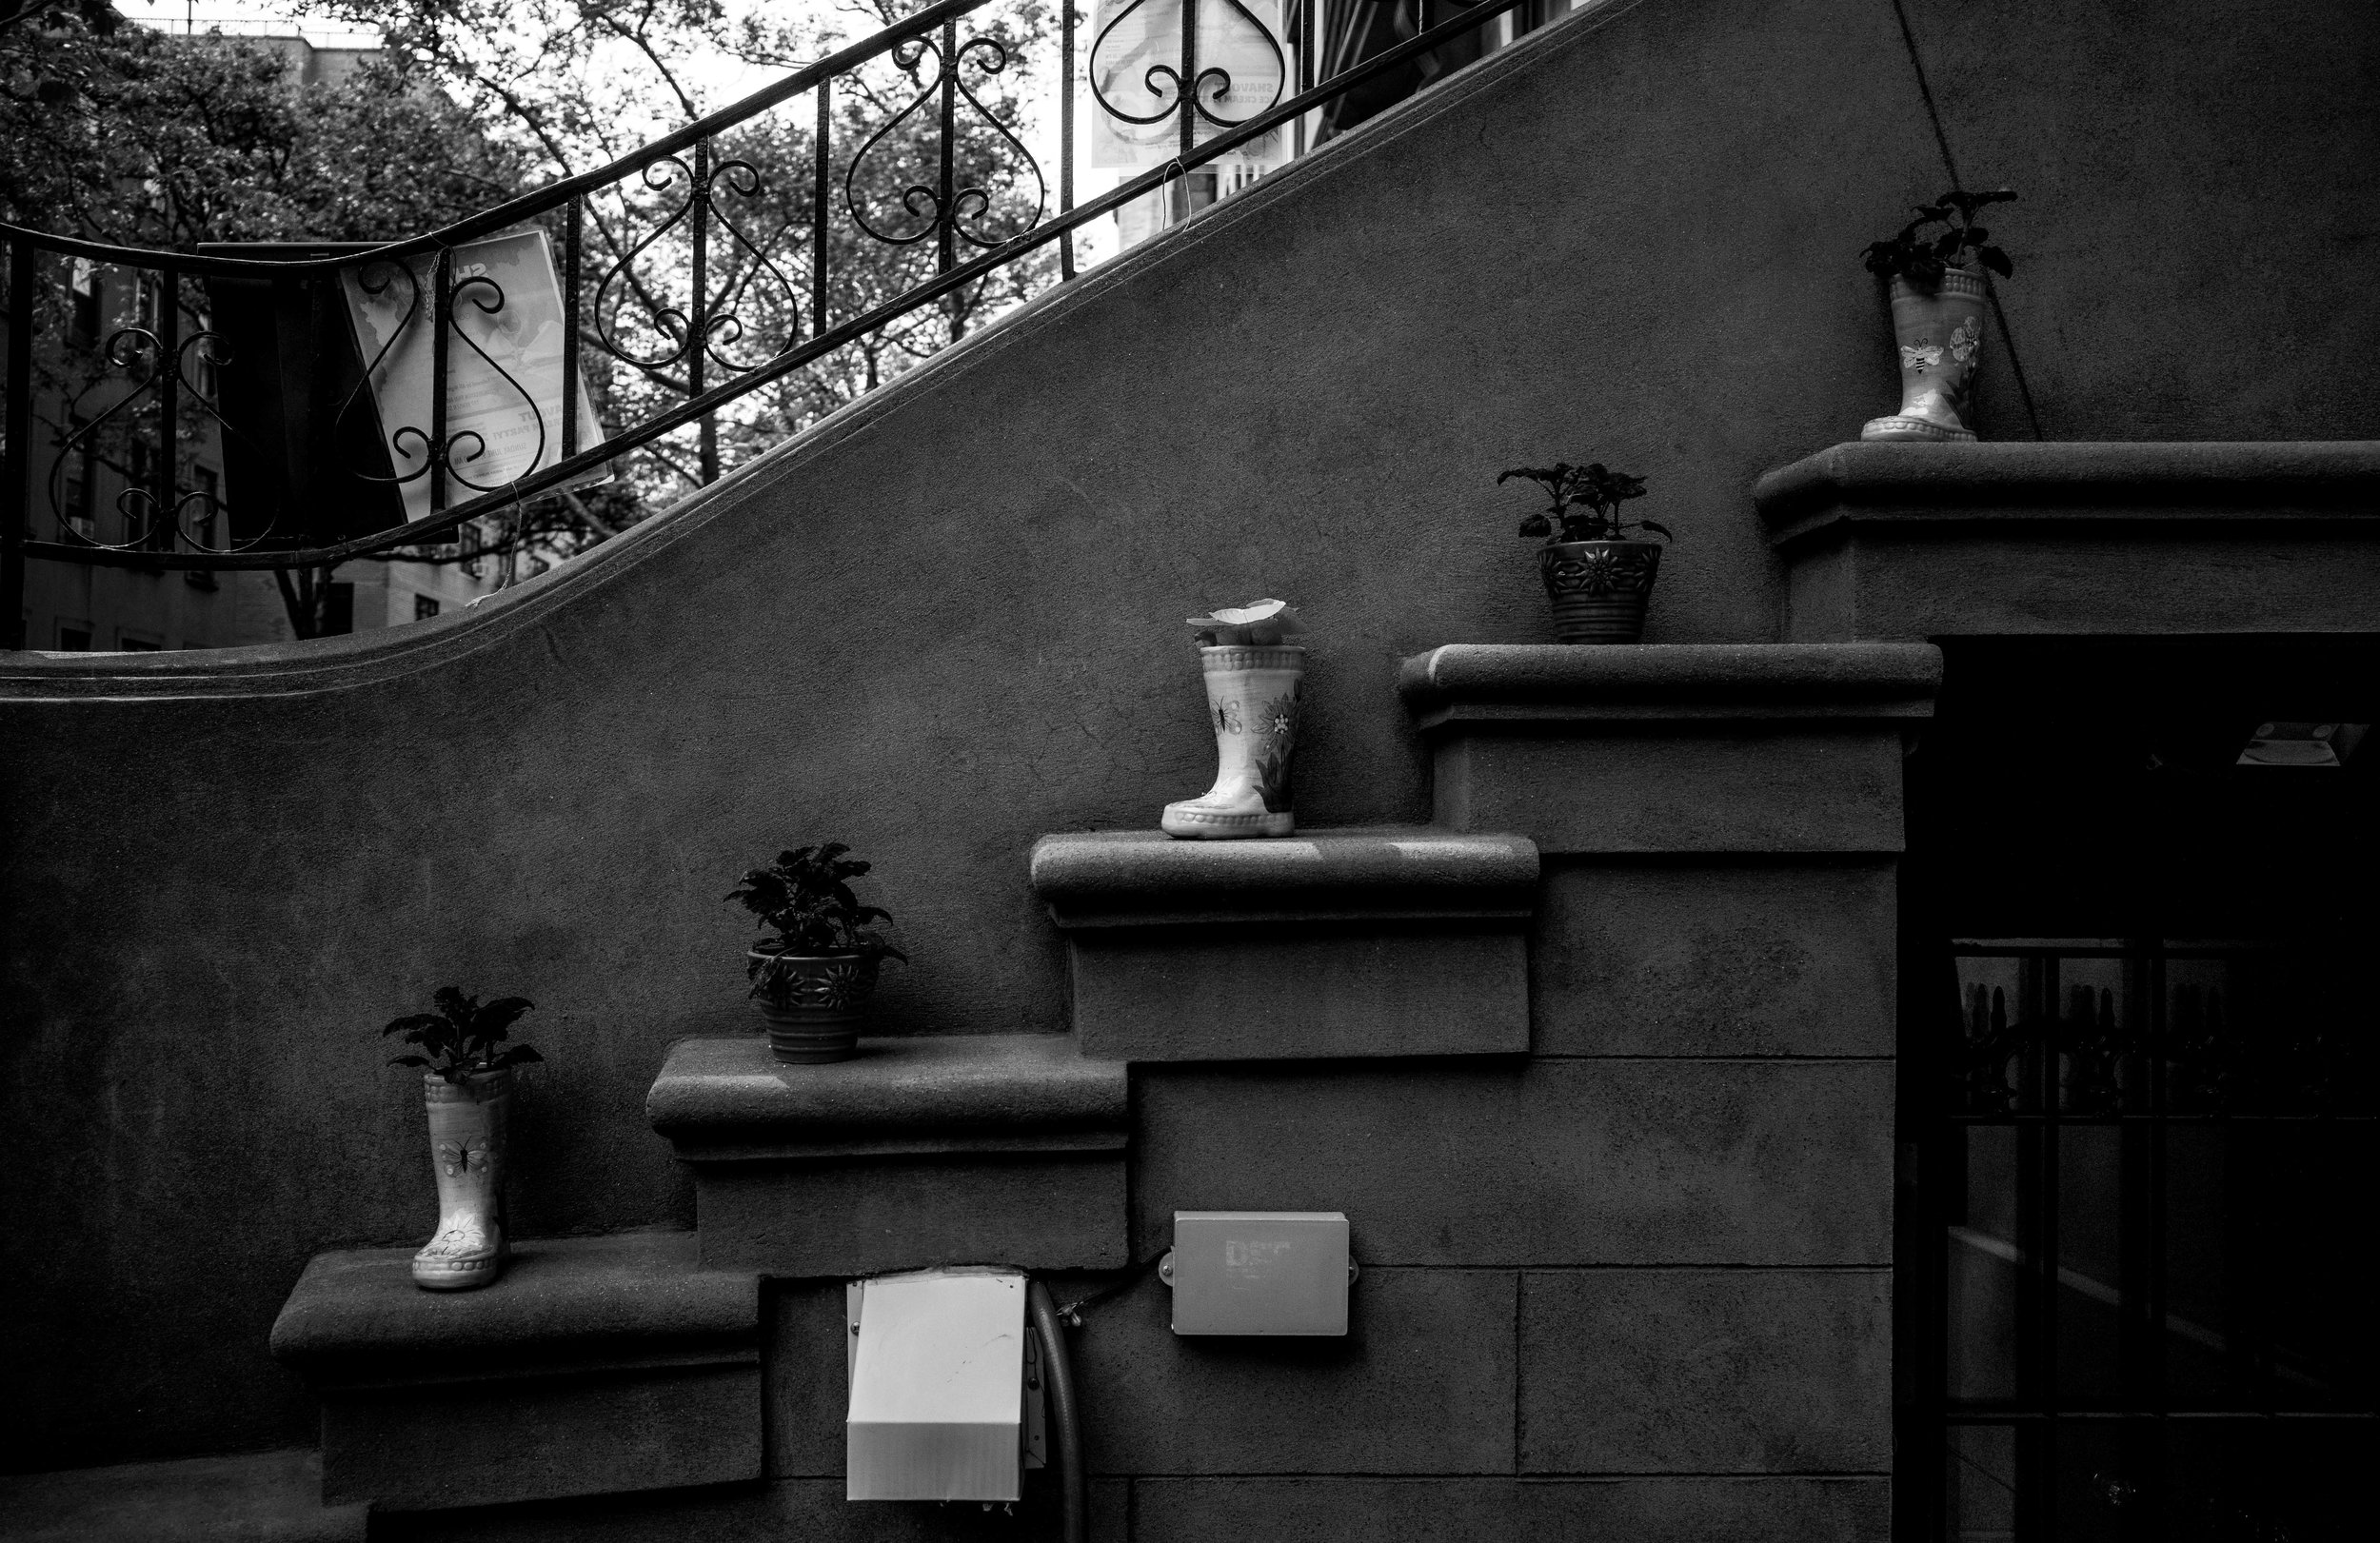 Flower pots in front of a brownstone.